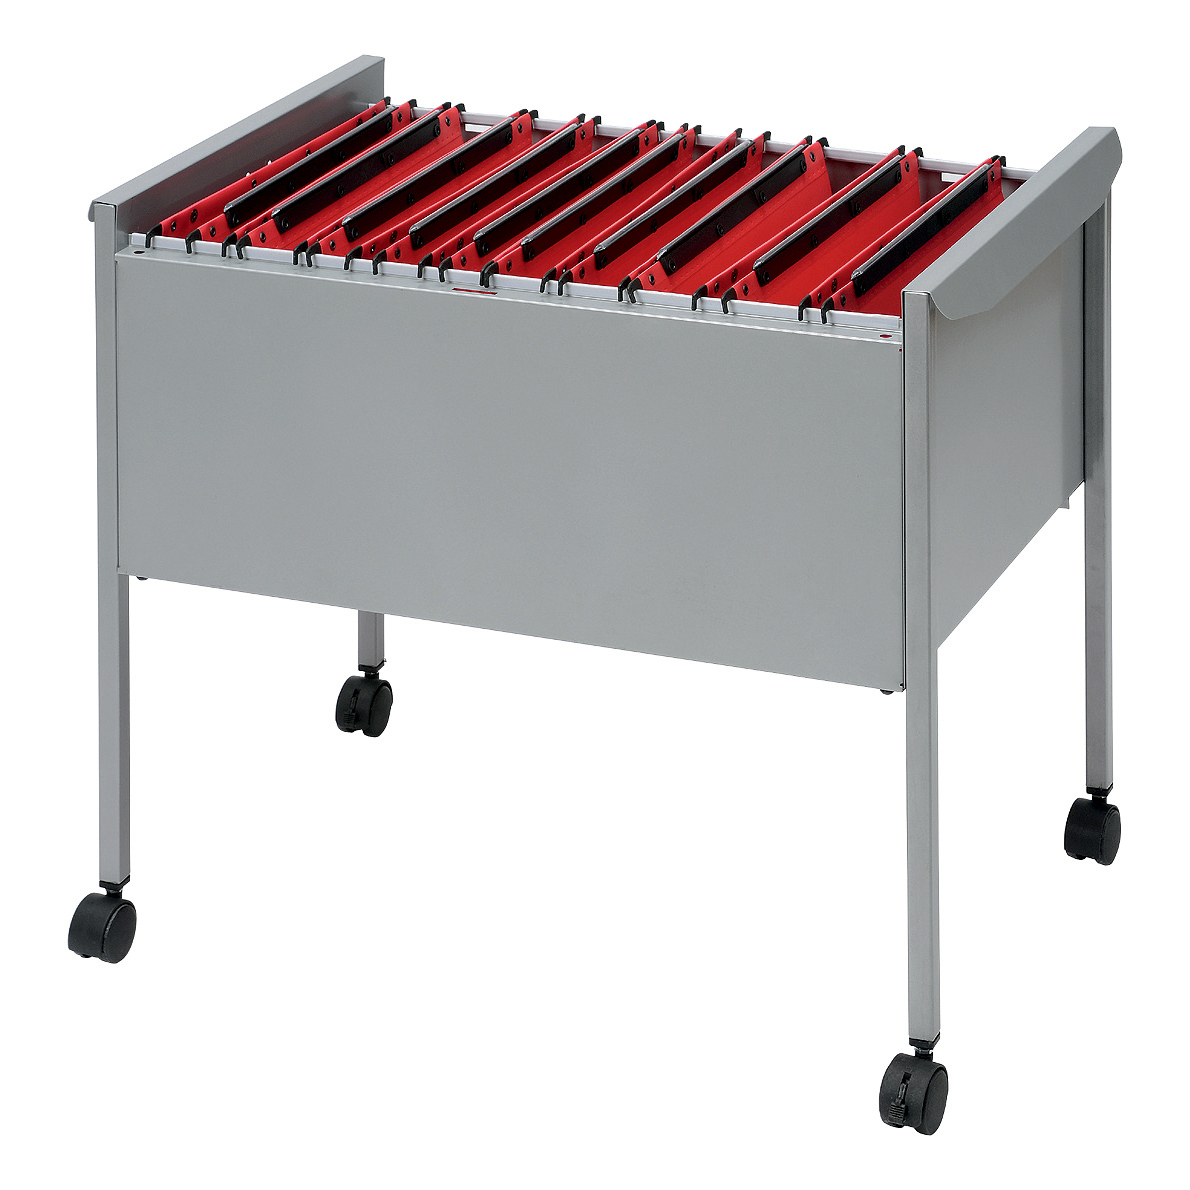 Filing Rexel Suspension Filing Trolley Capacity 100 Susp Files W660xD425xH590mm Grey Ref 50559